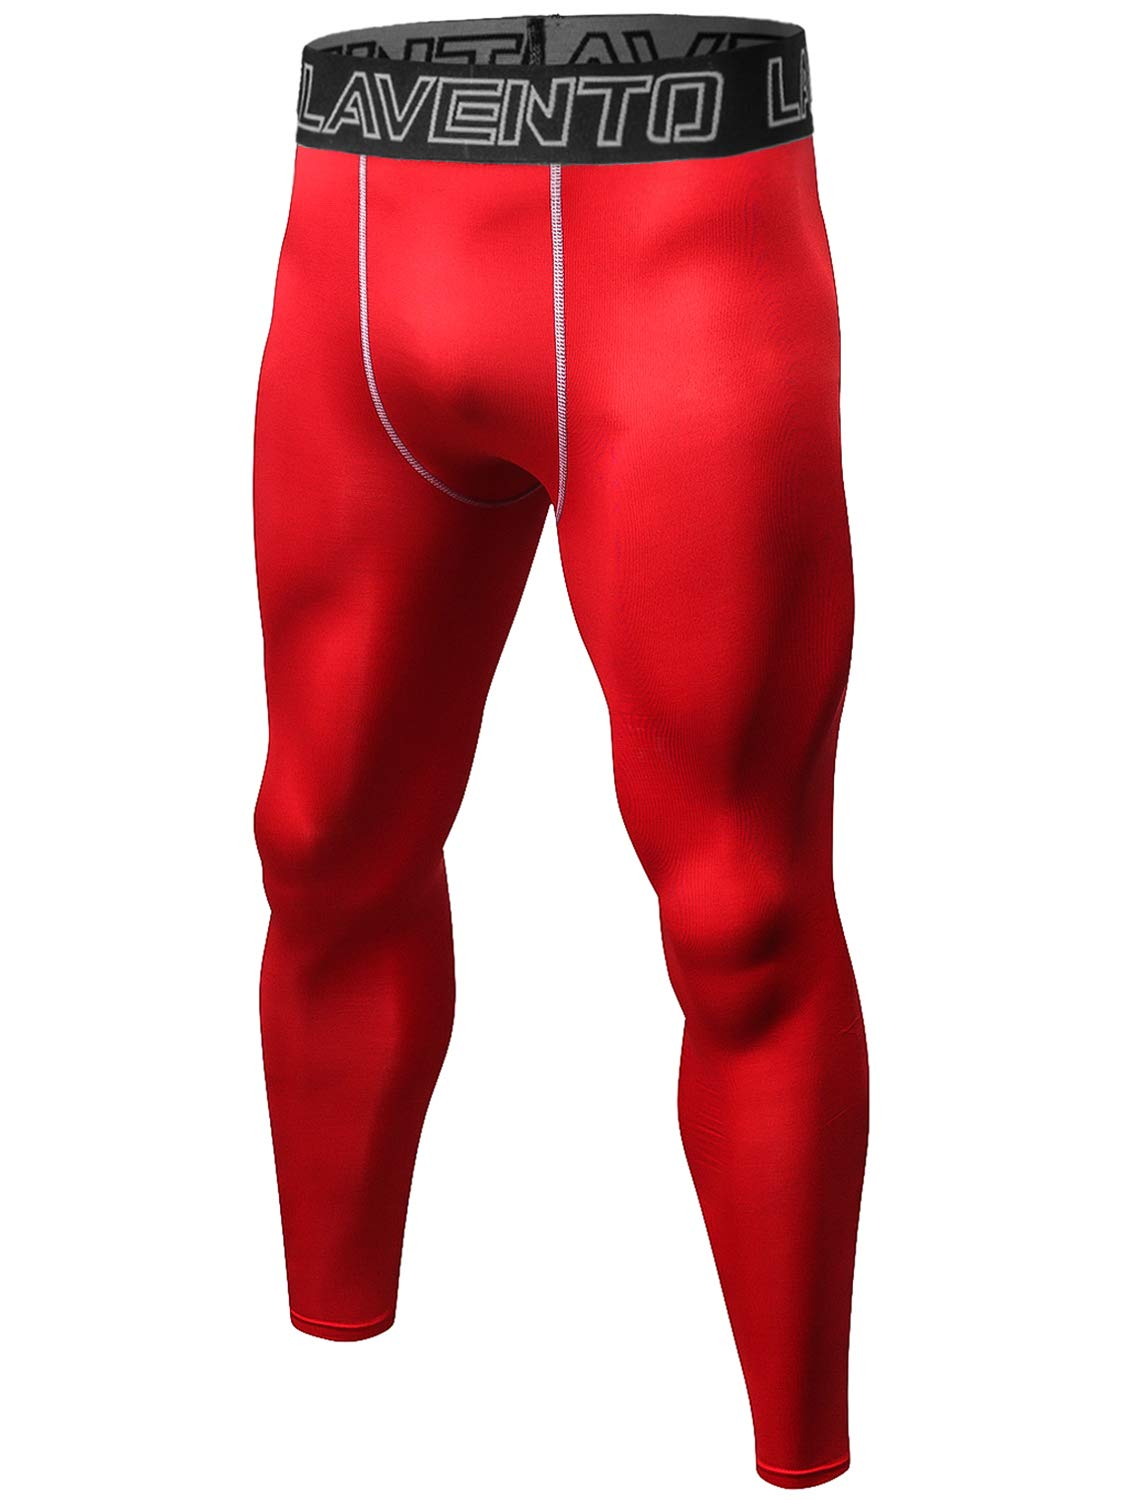 Lavento Men's Compression Pants Cool Dry Workout Tights (1 Pack-L1010 Red,Large) by Lavento